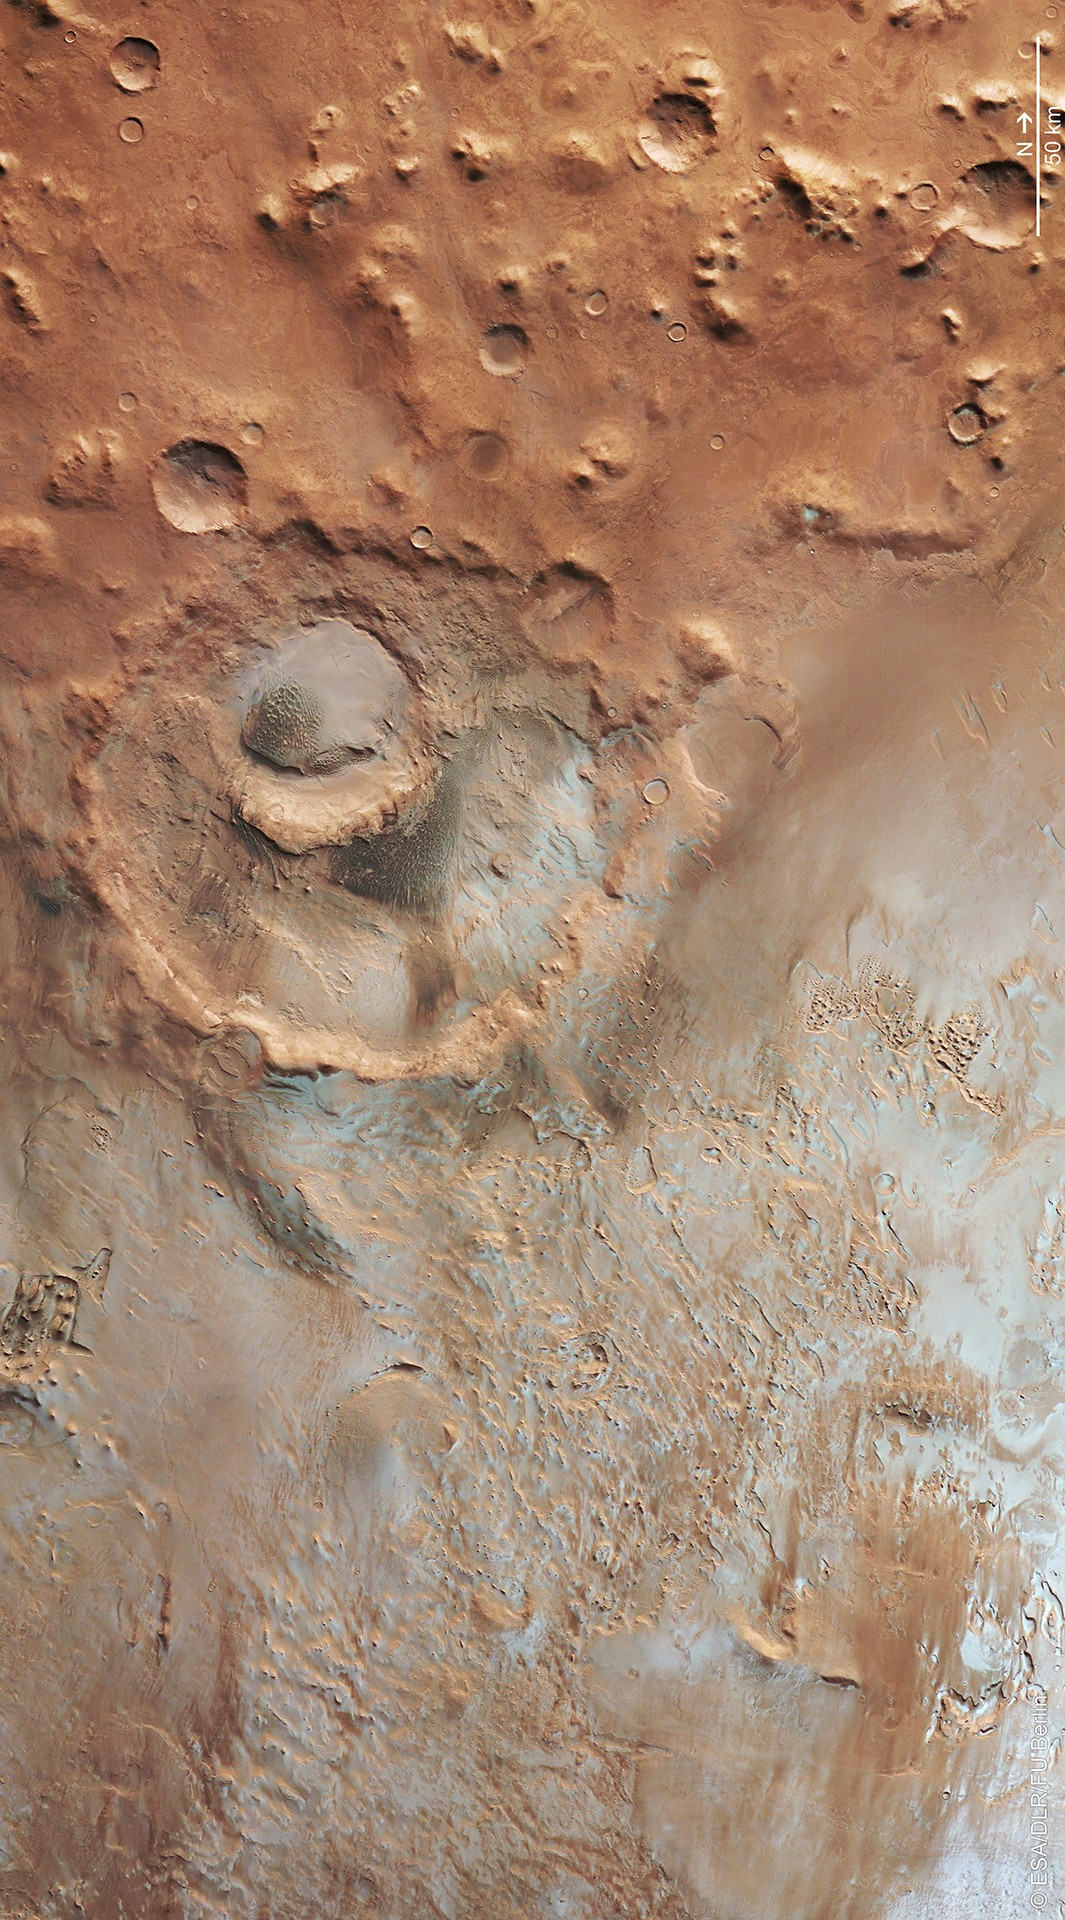 Hooke_crater_in_Argyre_basin